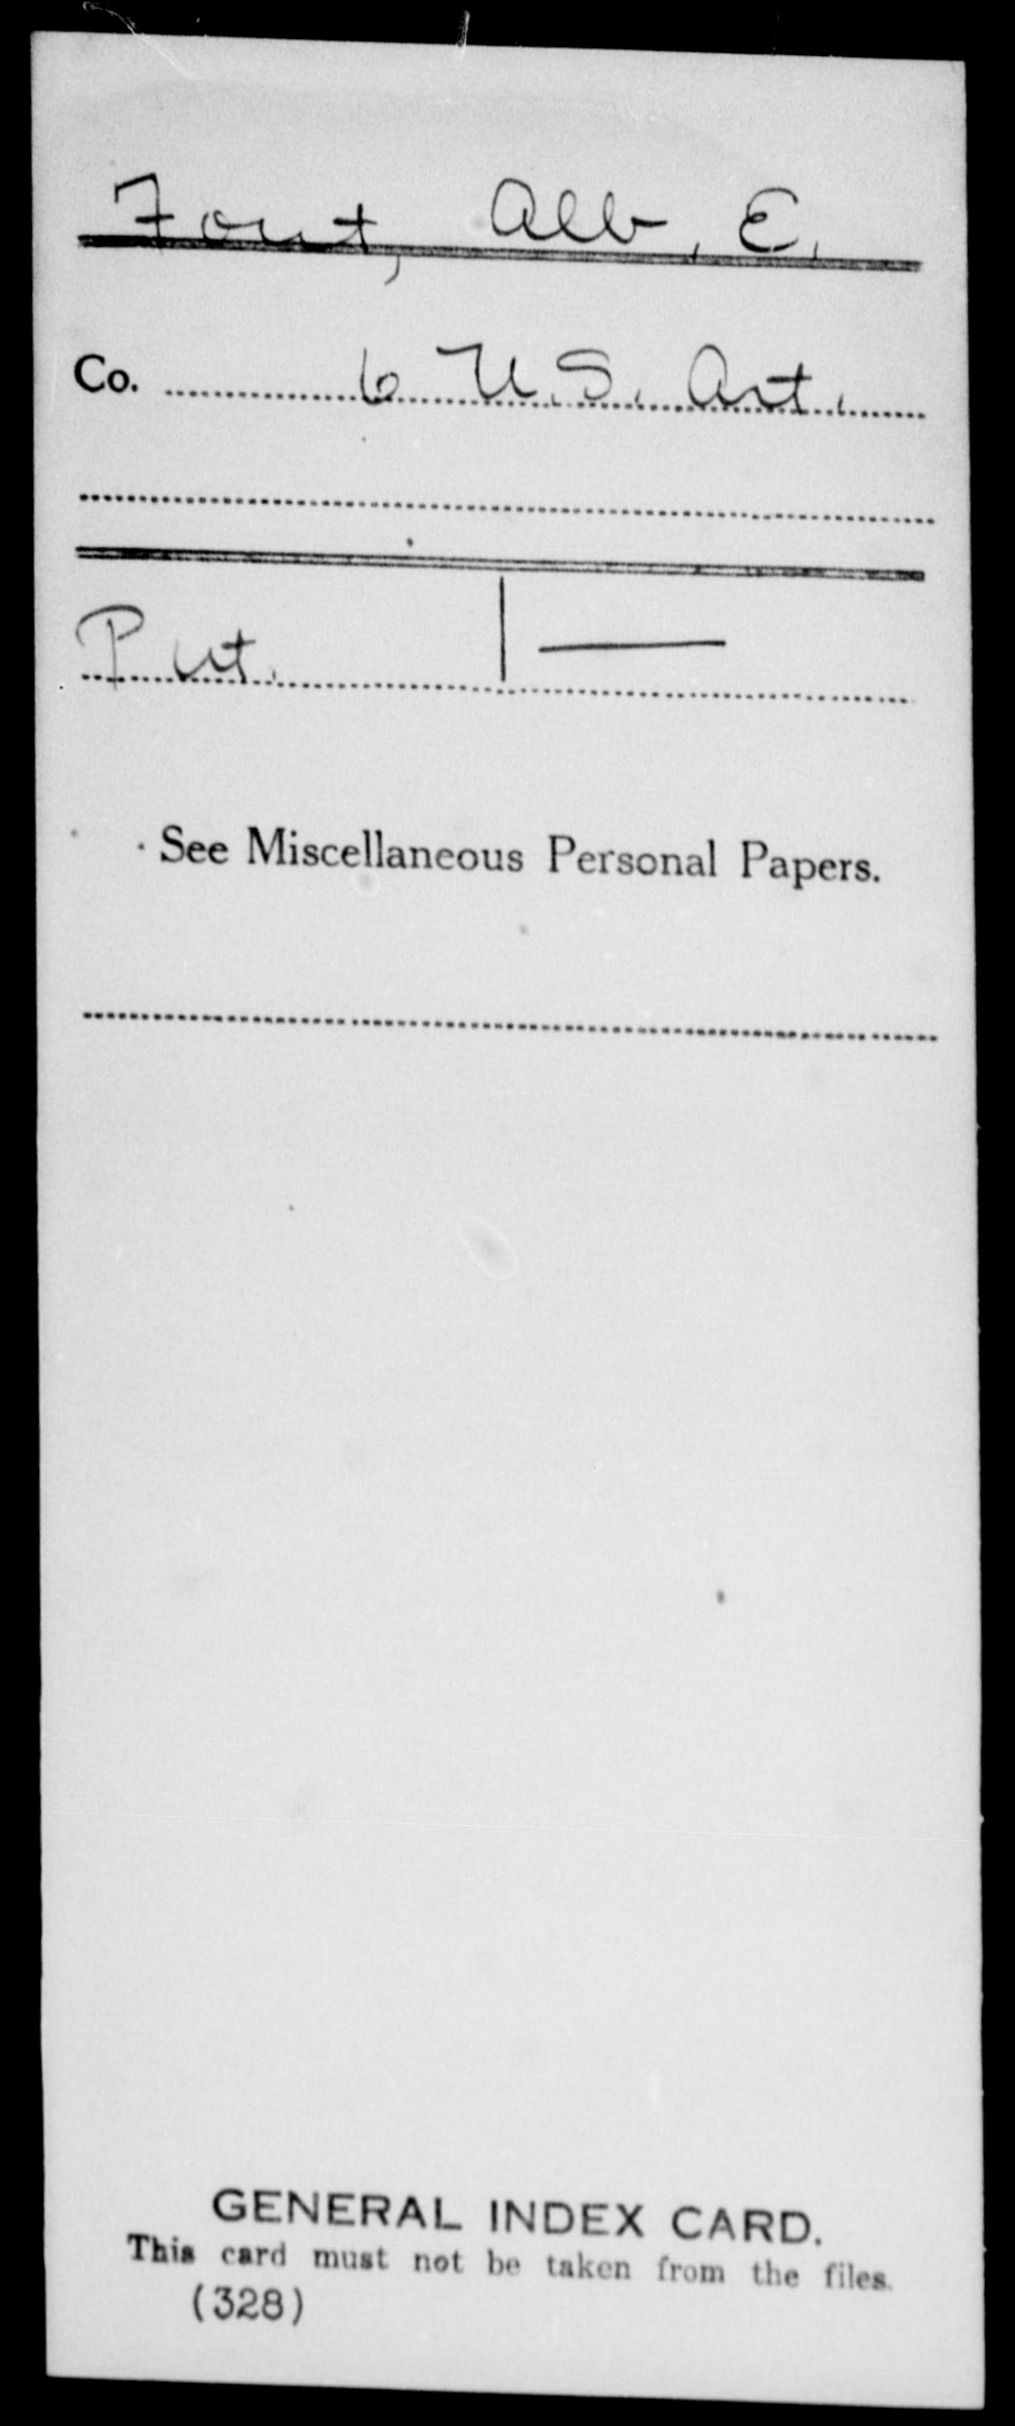 Fout, Alb E - State: United States - Regiment: 6 United States Artillery, Company [Blank]